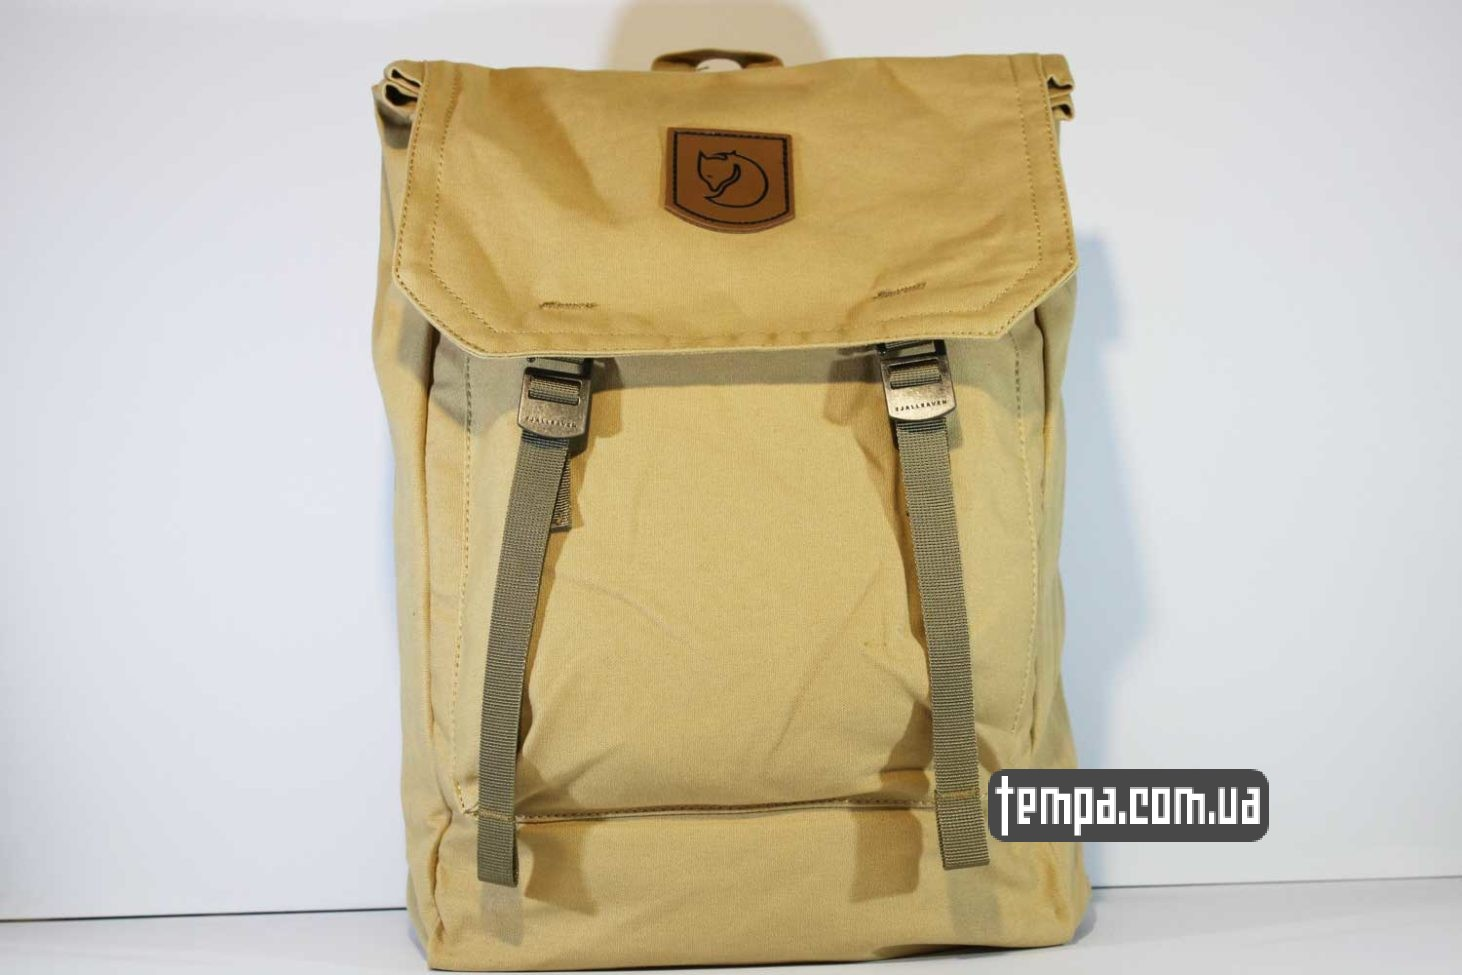 рюкзак сумка Fjallraven Foldsack No.1 Backpack бежевый